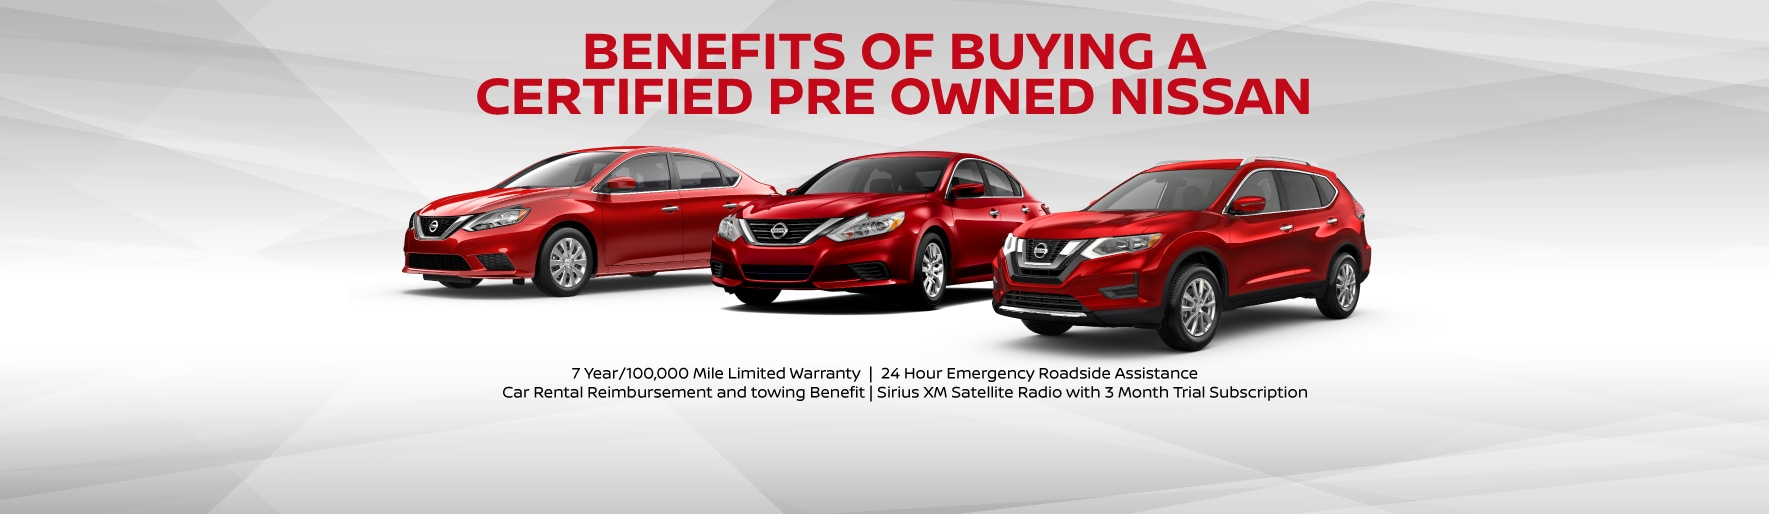 Vaden nissan of hinesville new used nissan dealer near fort stewart garden city